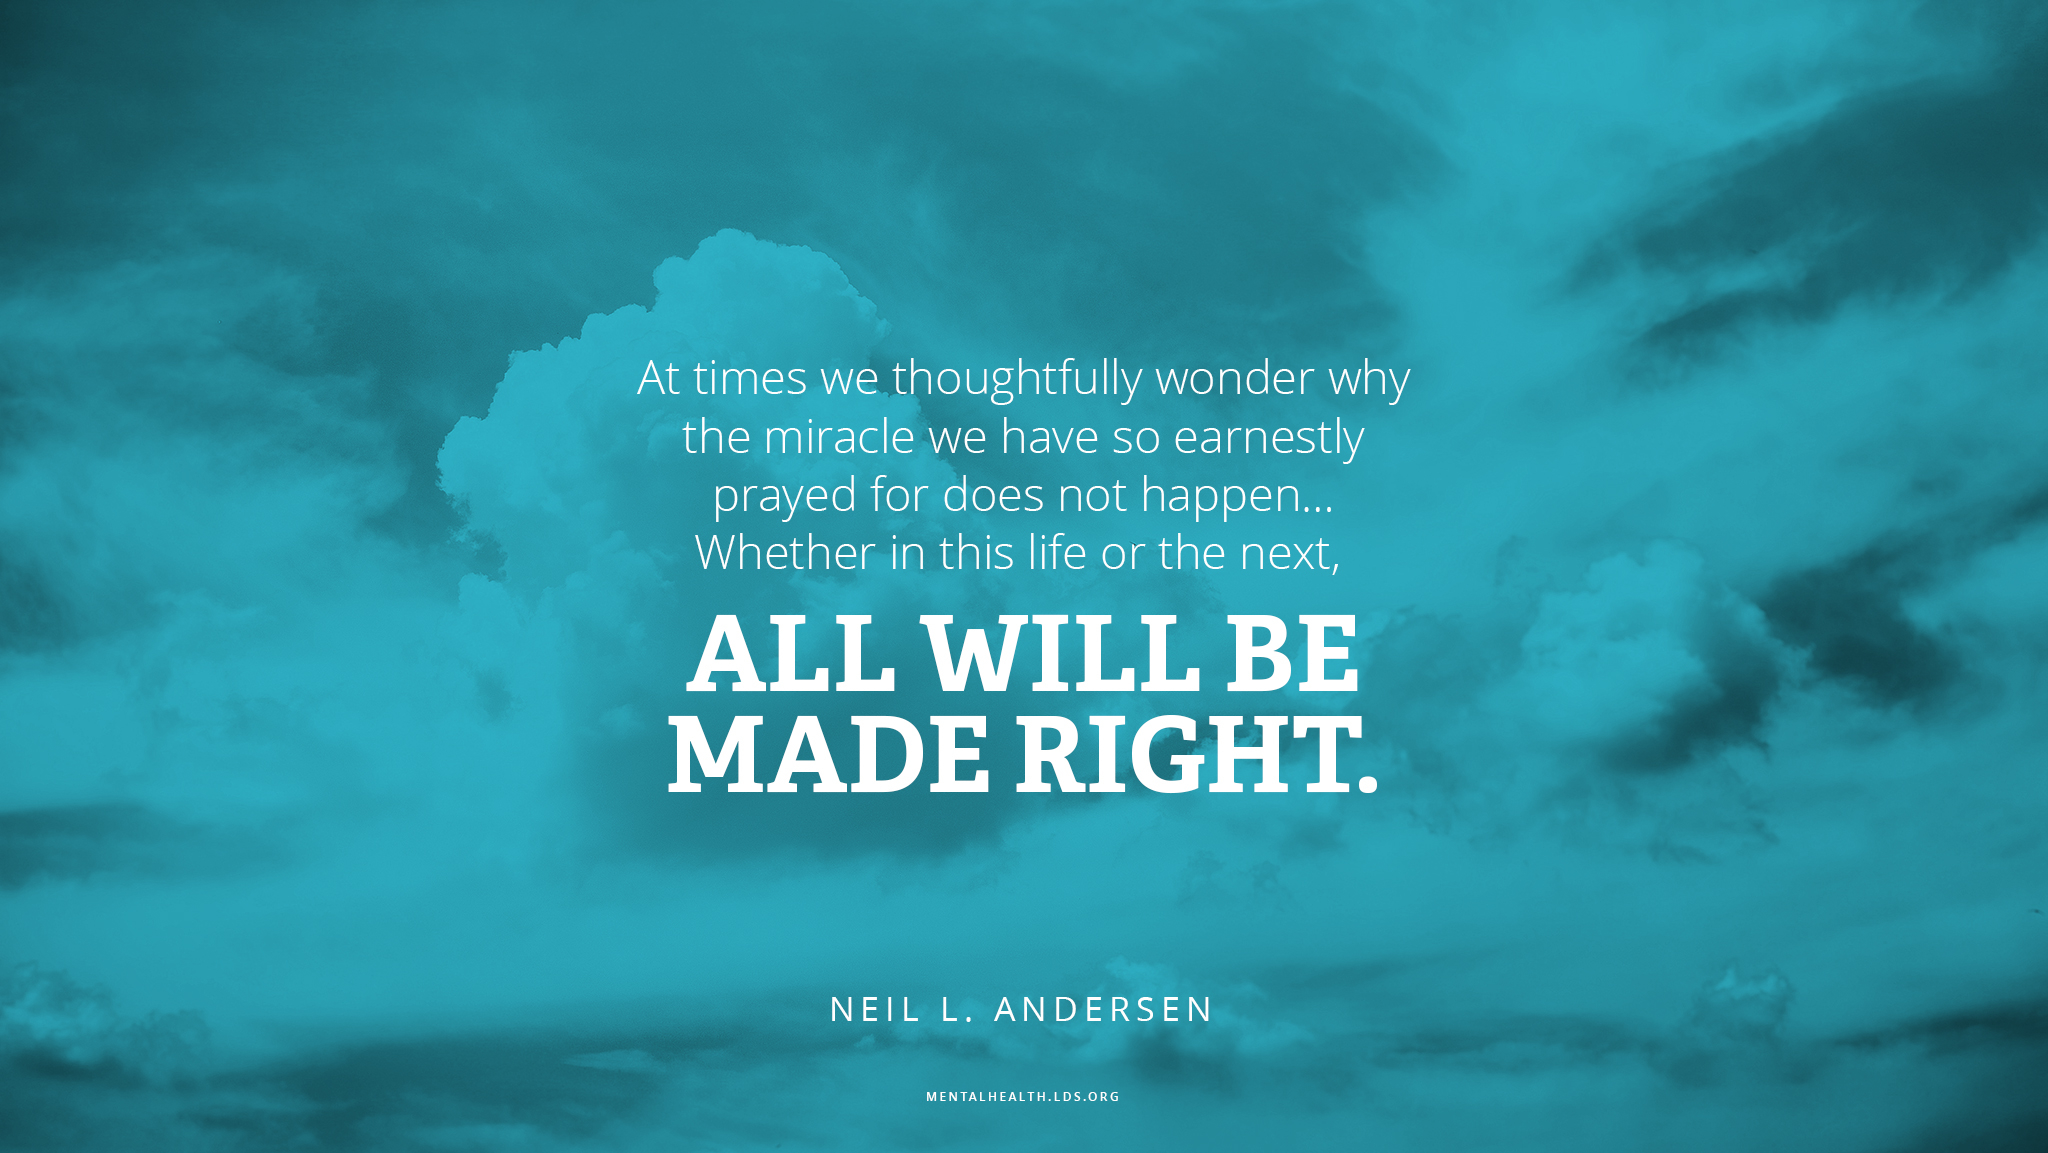 """""""At times we thoughtfully wonder why the miracle we have so earnestly prayed for does not happen … Whether in this life or the next, all will be made right.""""—Elder Neil L. Andersen, """"What Thinks Christ of Me?"""""""